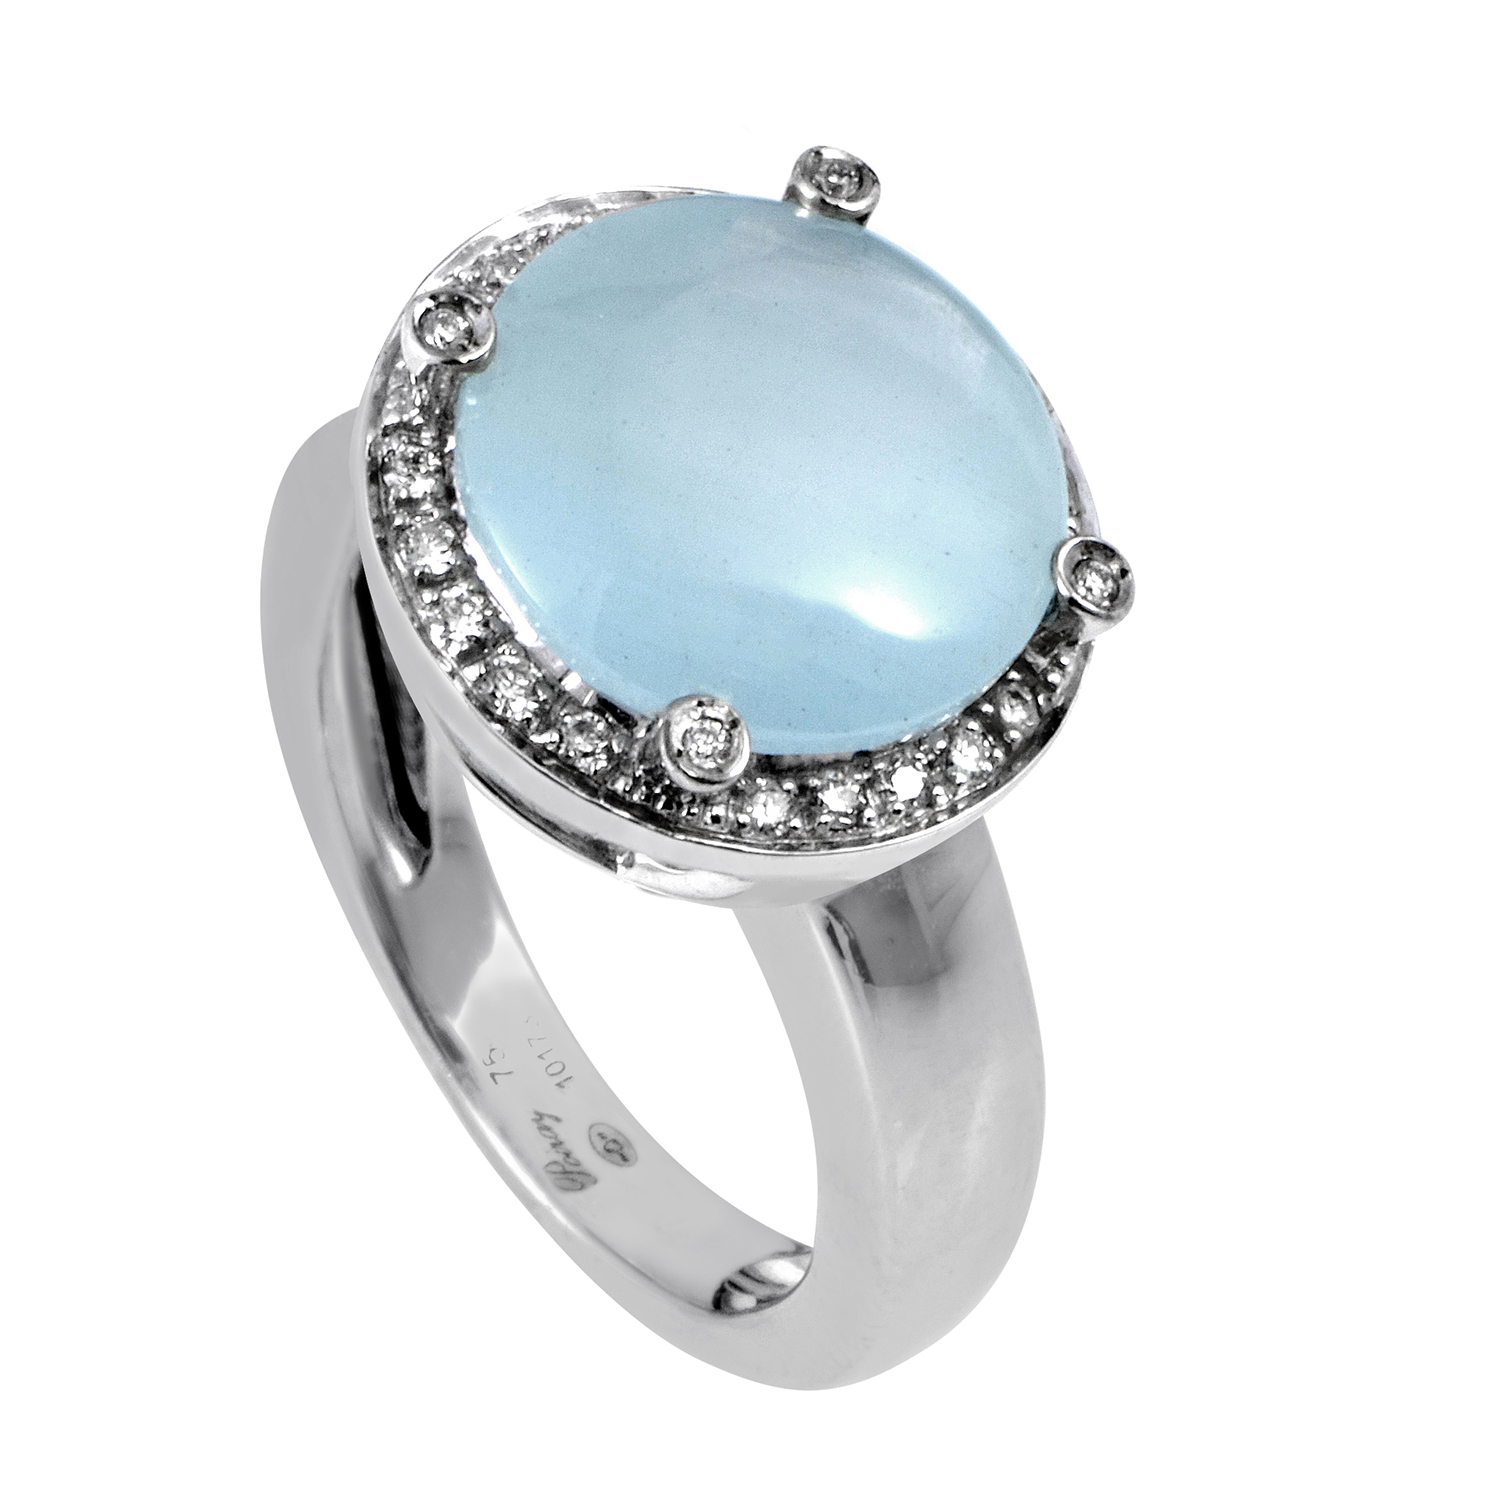 18K White Gold Diamond & Aquamarine Ring PPD2113